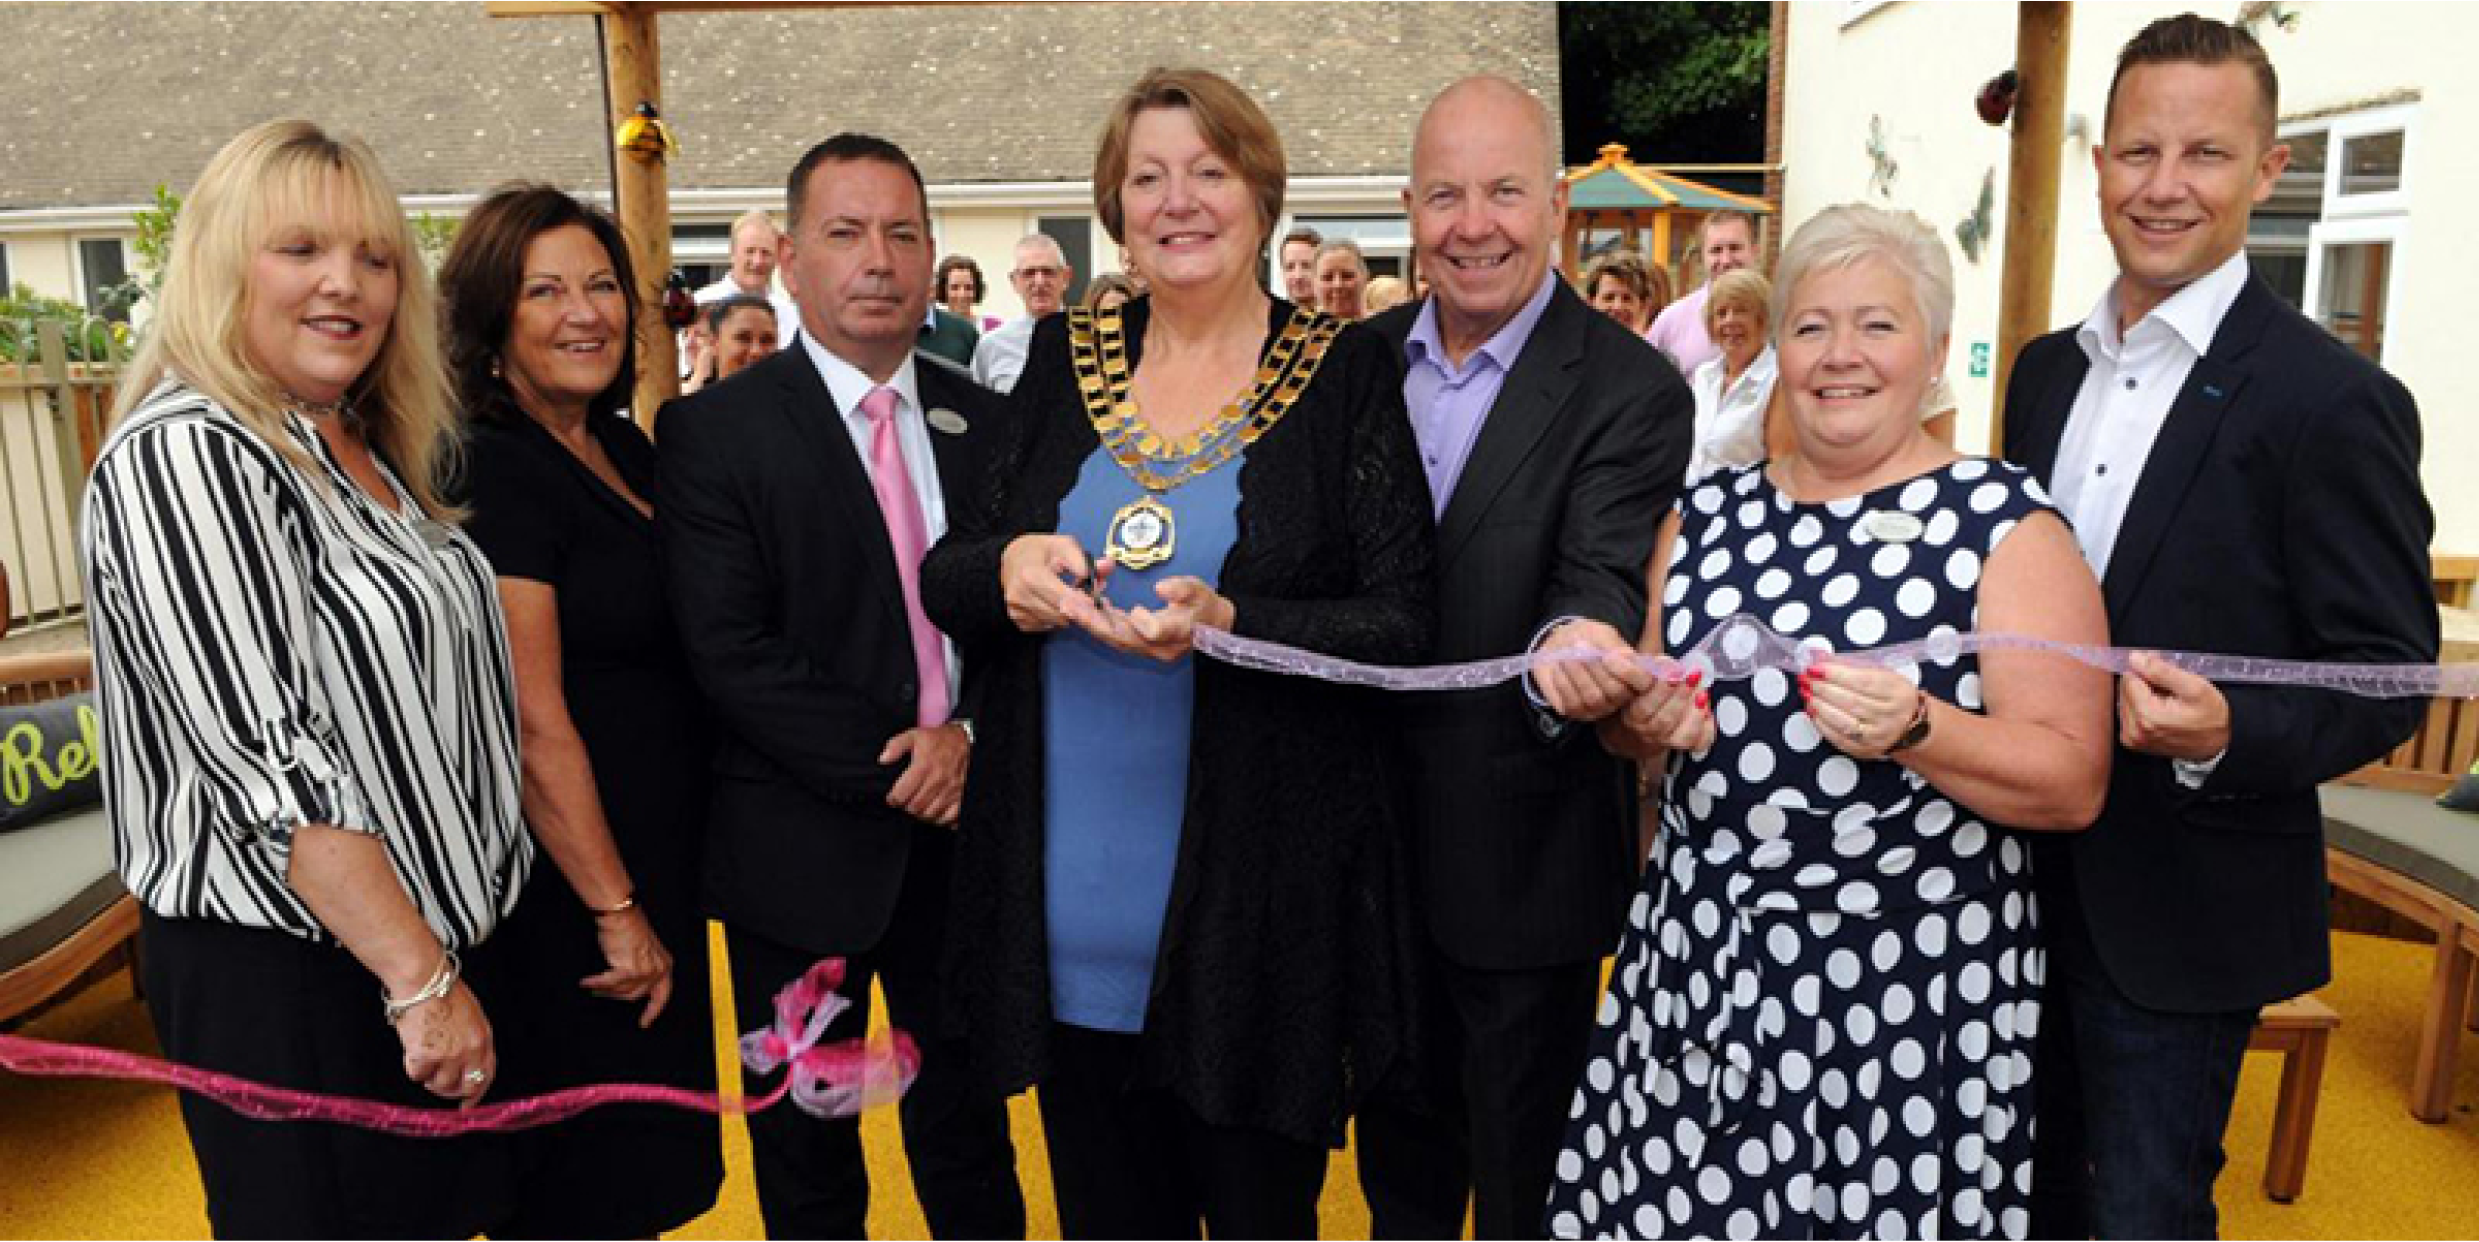 Swindon Mayor cuts the ribbon at opening of Sensory Garden designed for care home residents with dementia